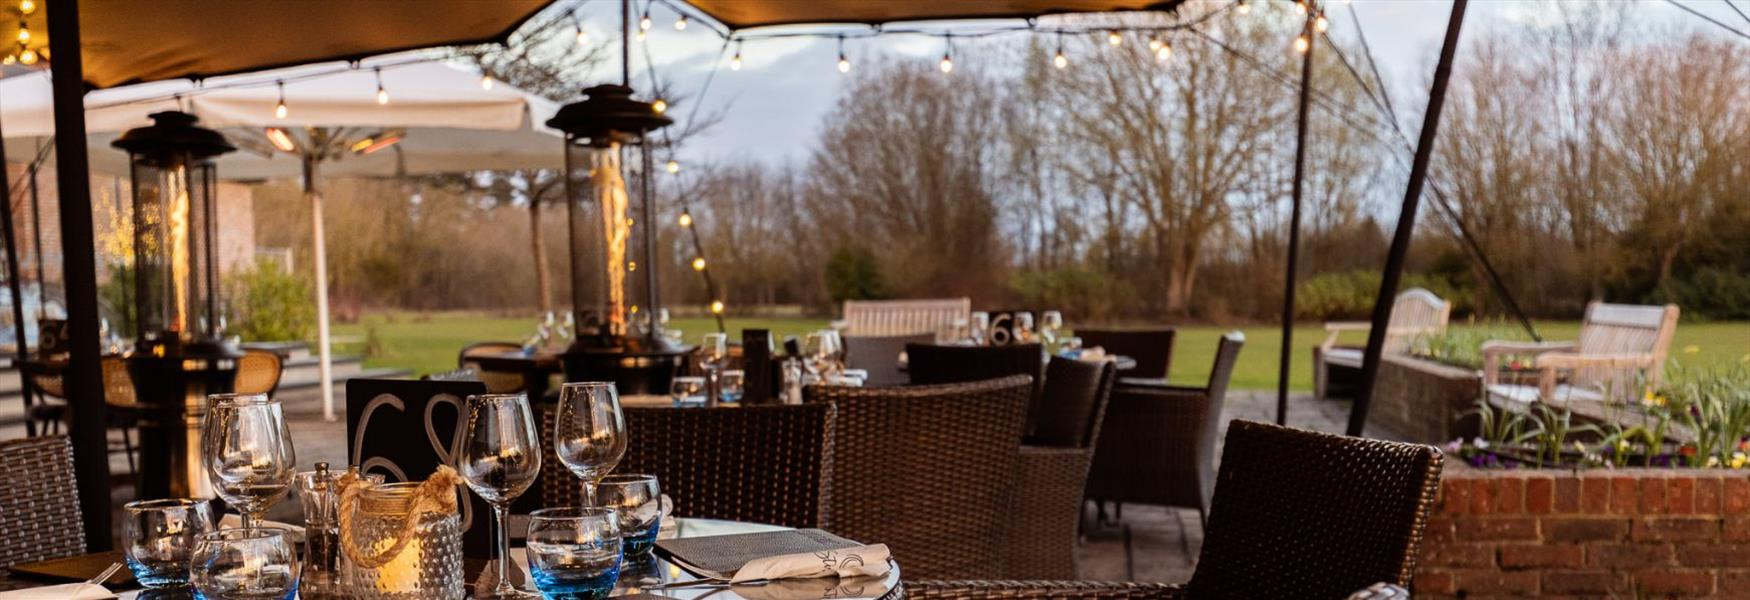 Outdoor dining terrace at Stirrups Hotel